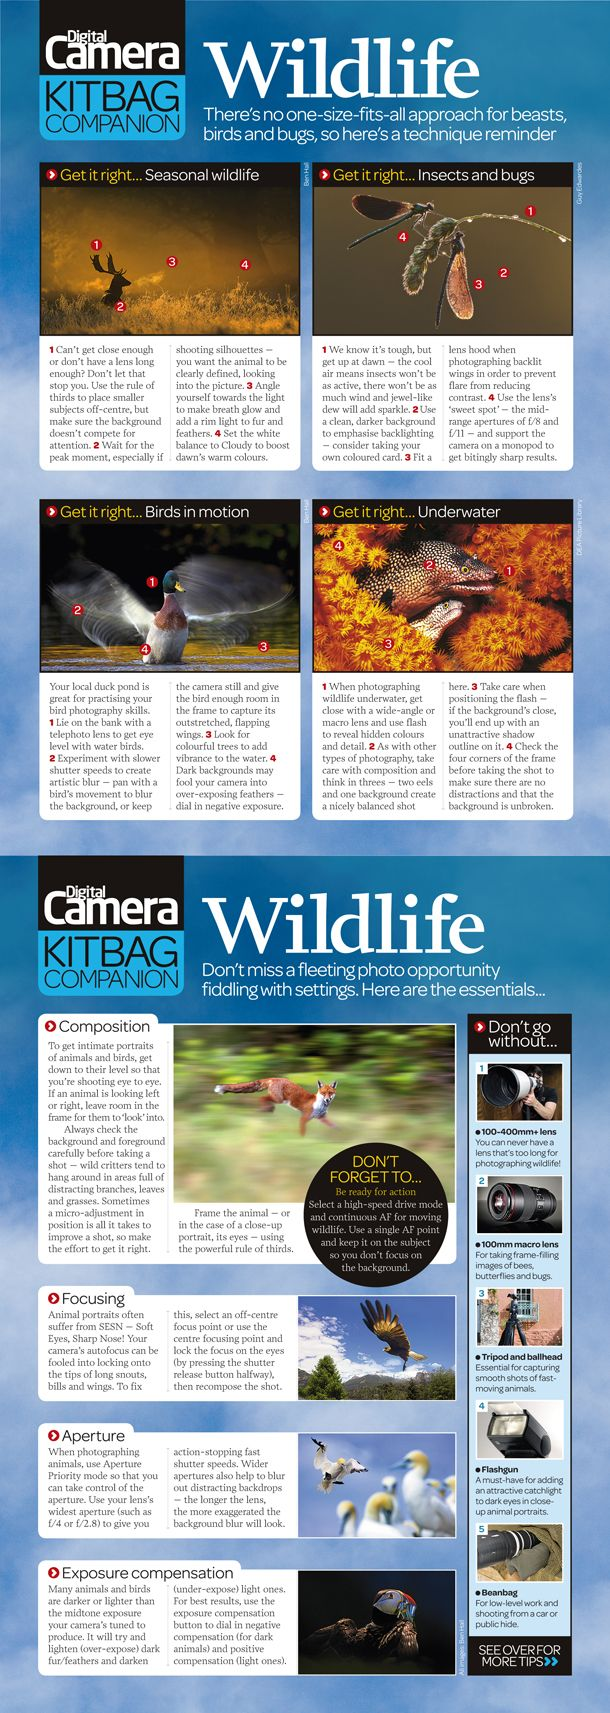 wildlife photography cheat sheet:   tips on composing, exposing and how to shoot some of the more popular subjects